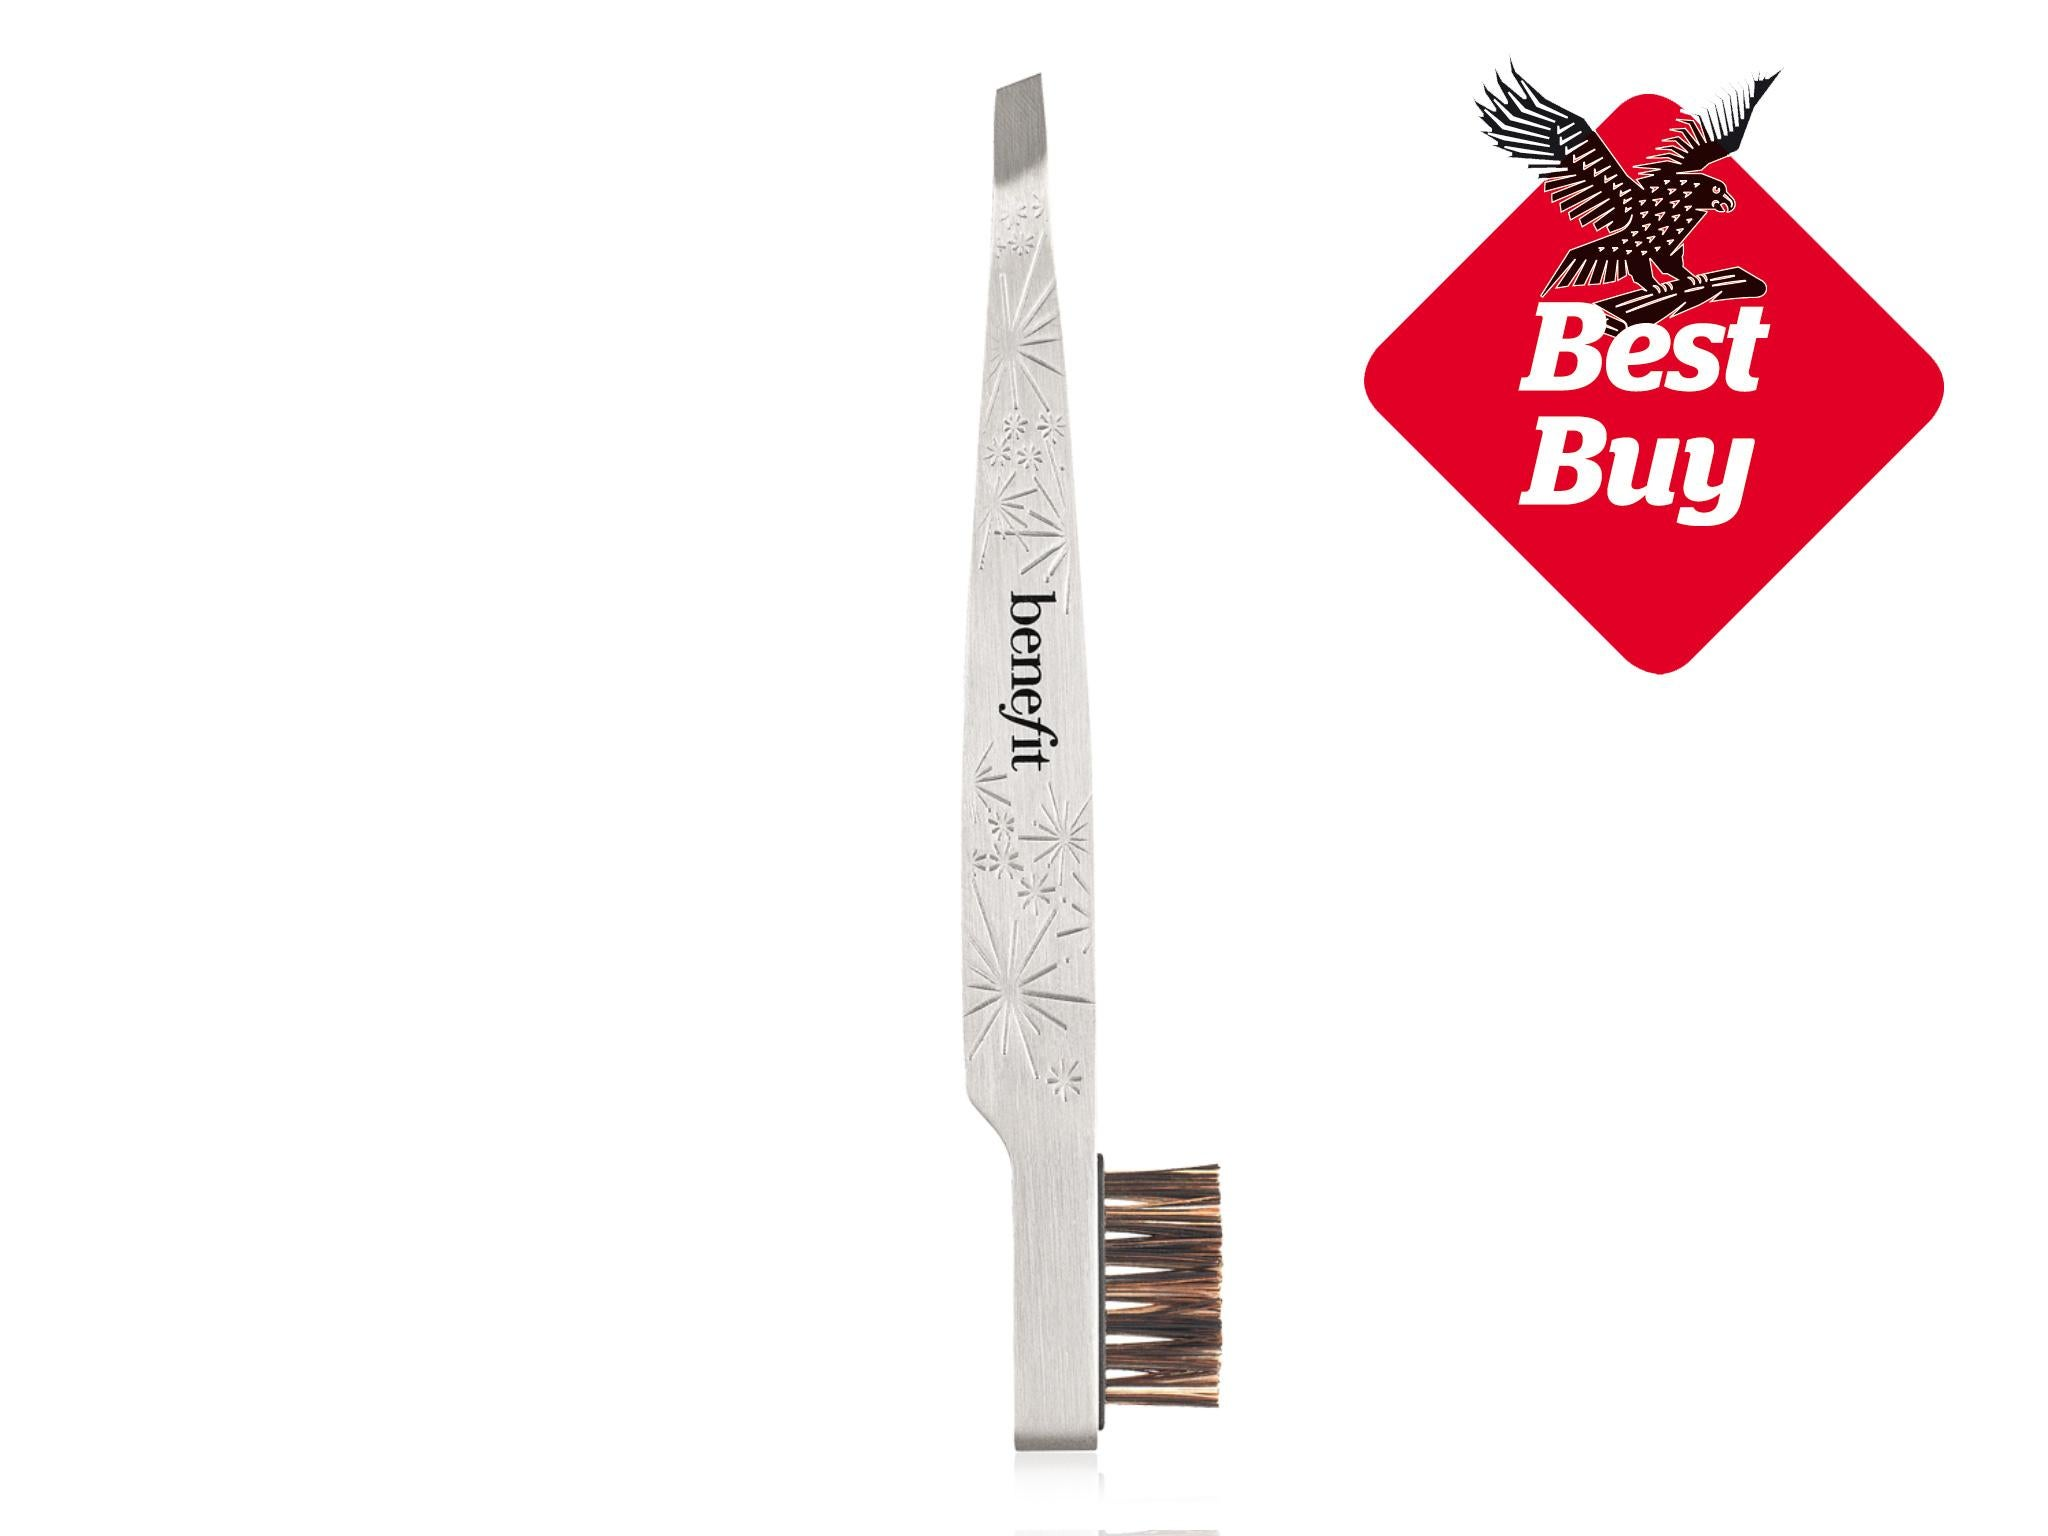 10 Best Tweezers The Independent